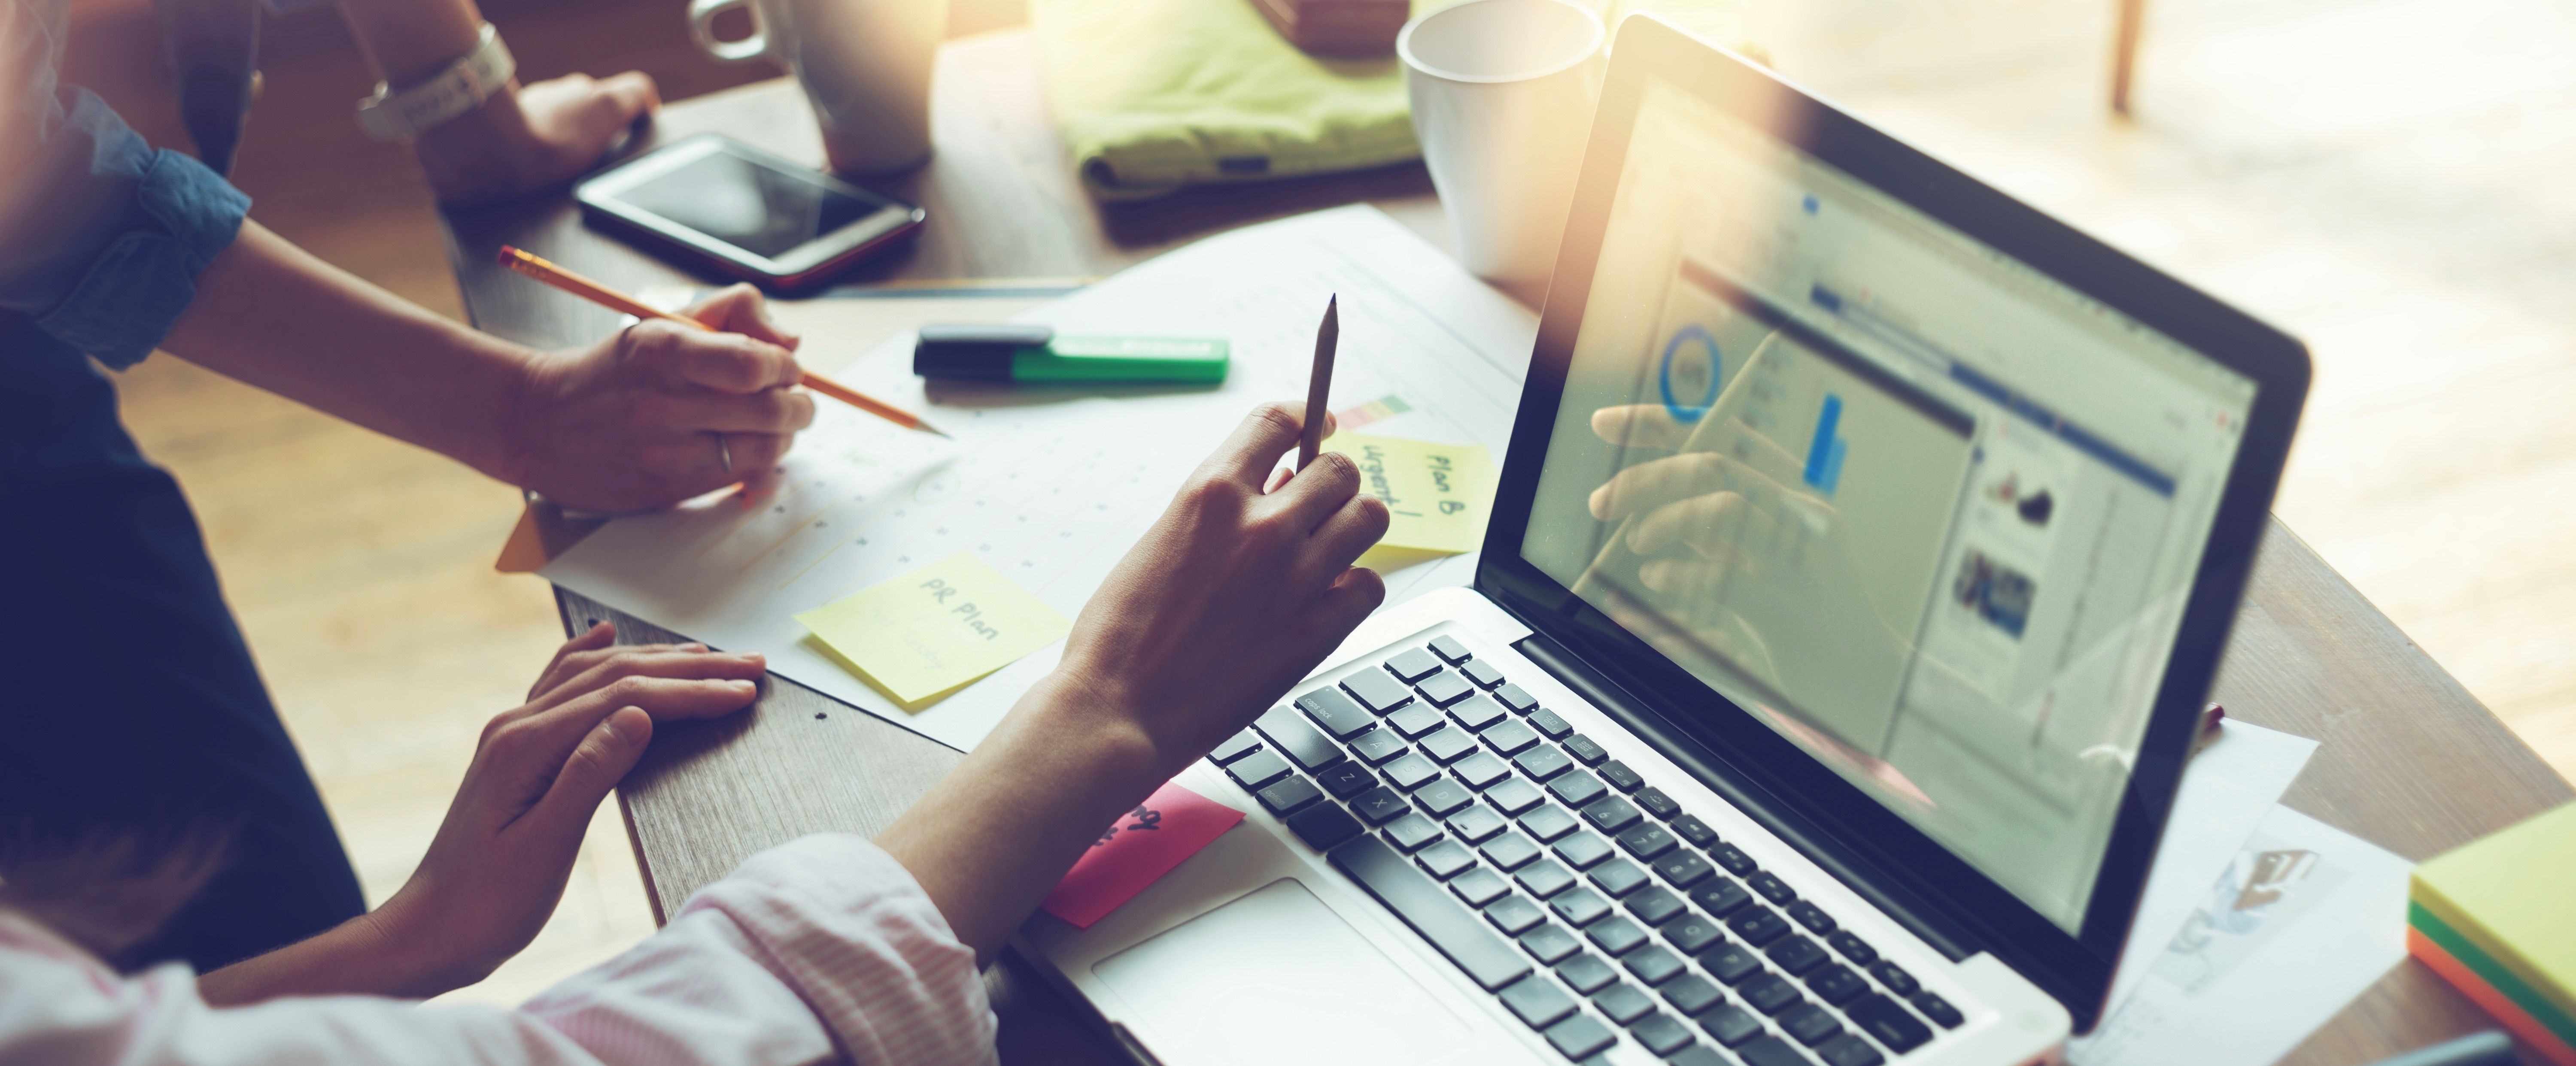 How to Get Better Marketing Talent